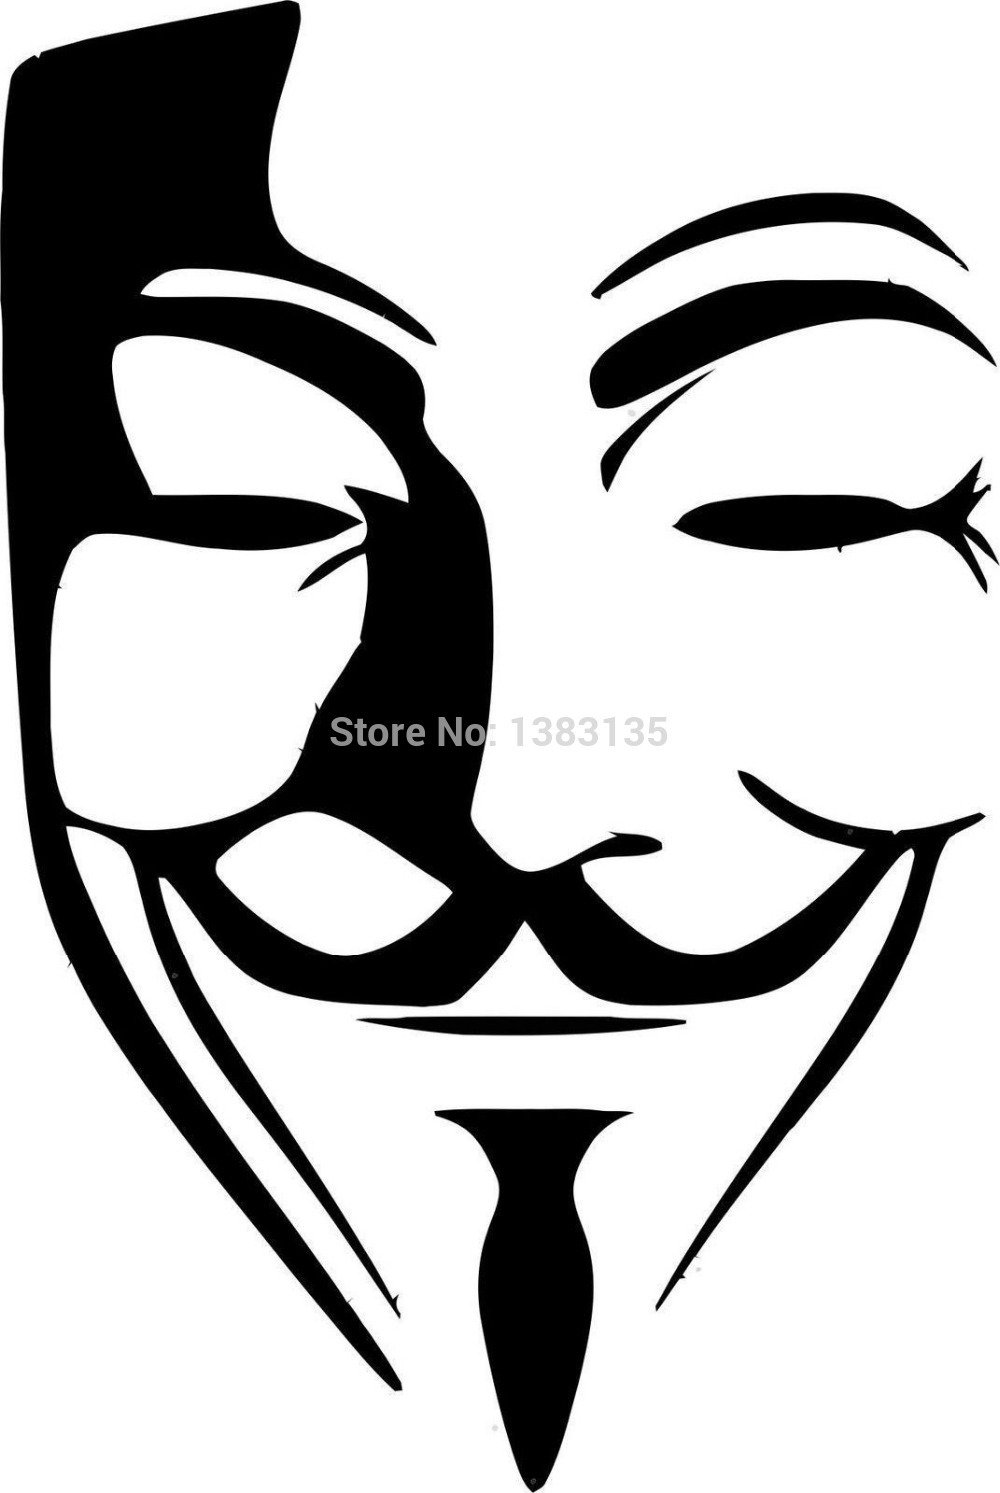 1000x1493 Anonymous Vector Png Transparent Anonymous Vector.png Images